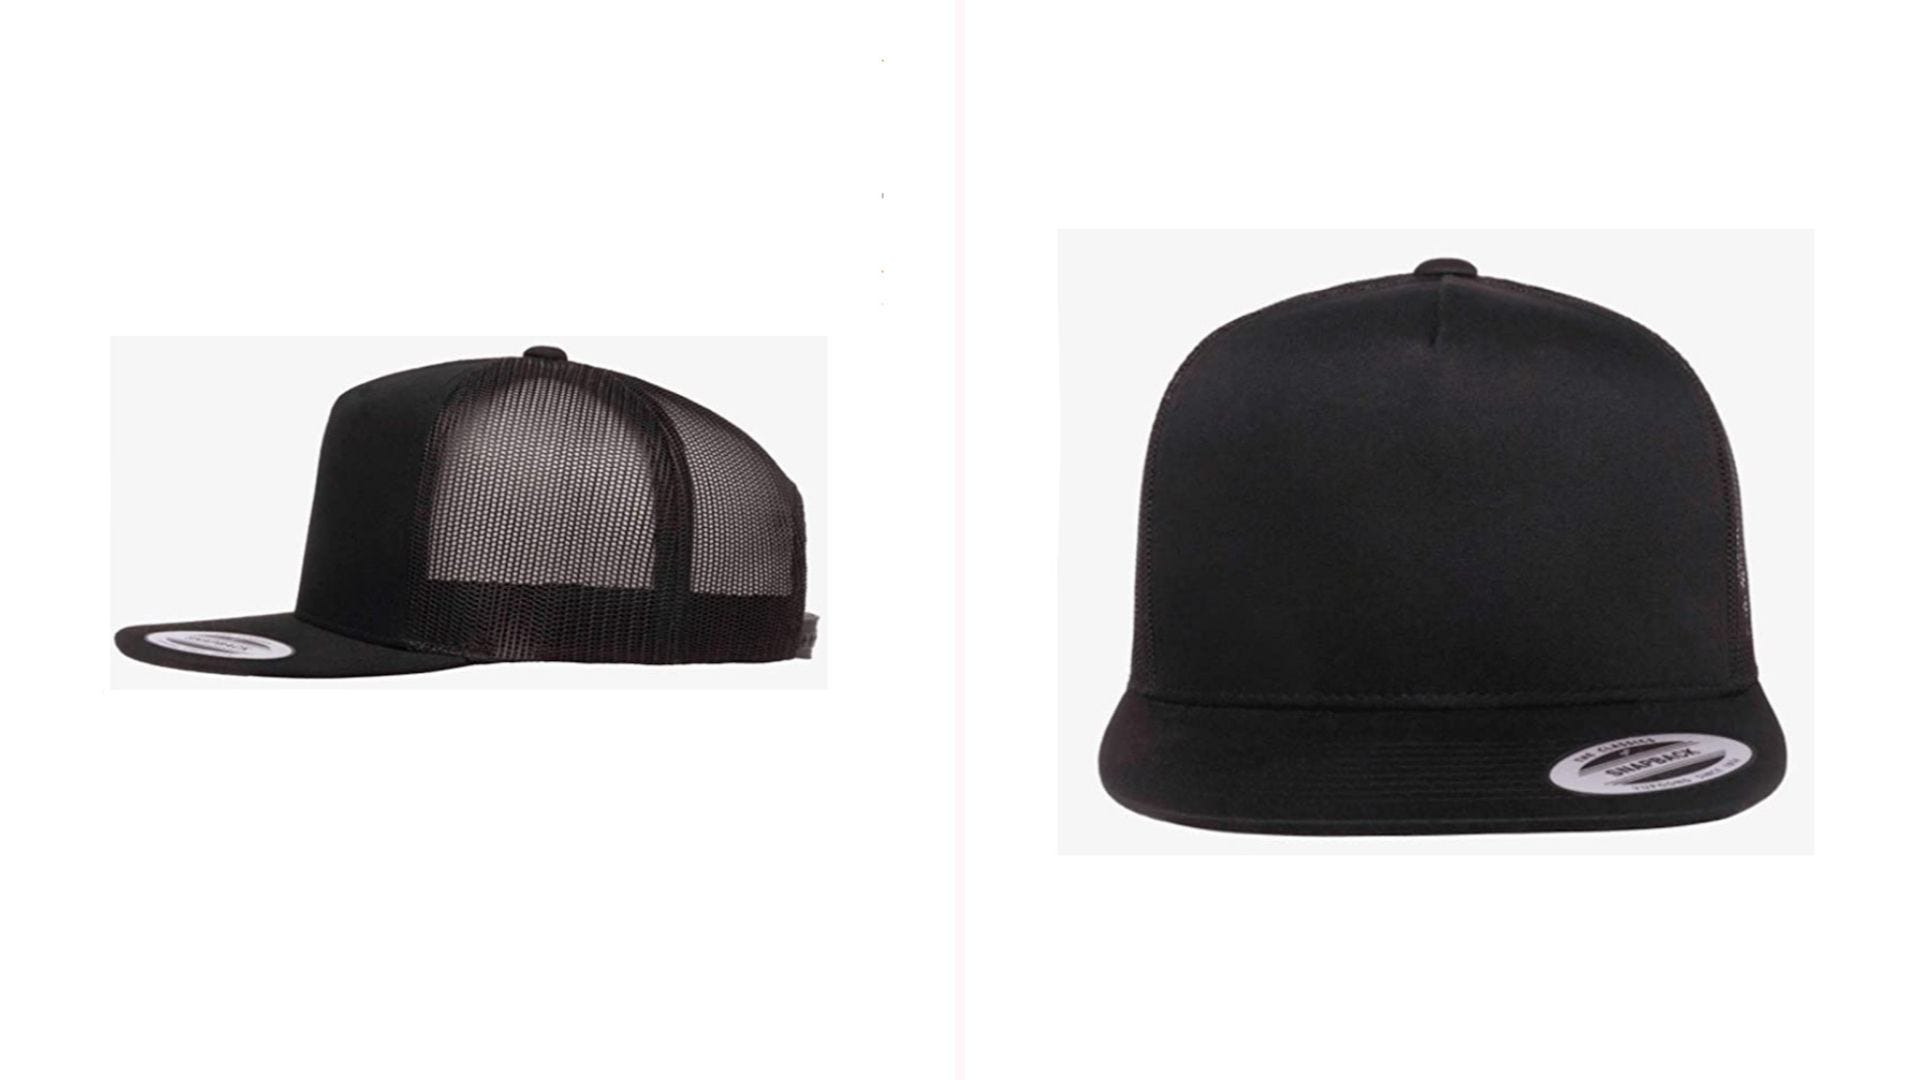 Two views of a black hat with a flat bill and mesh.